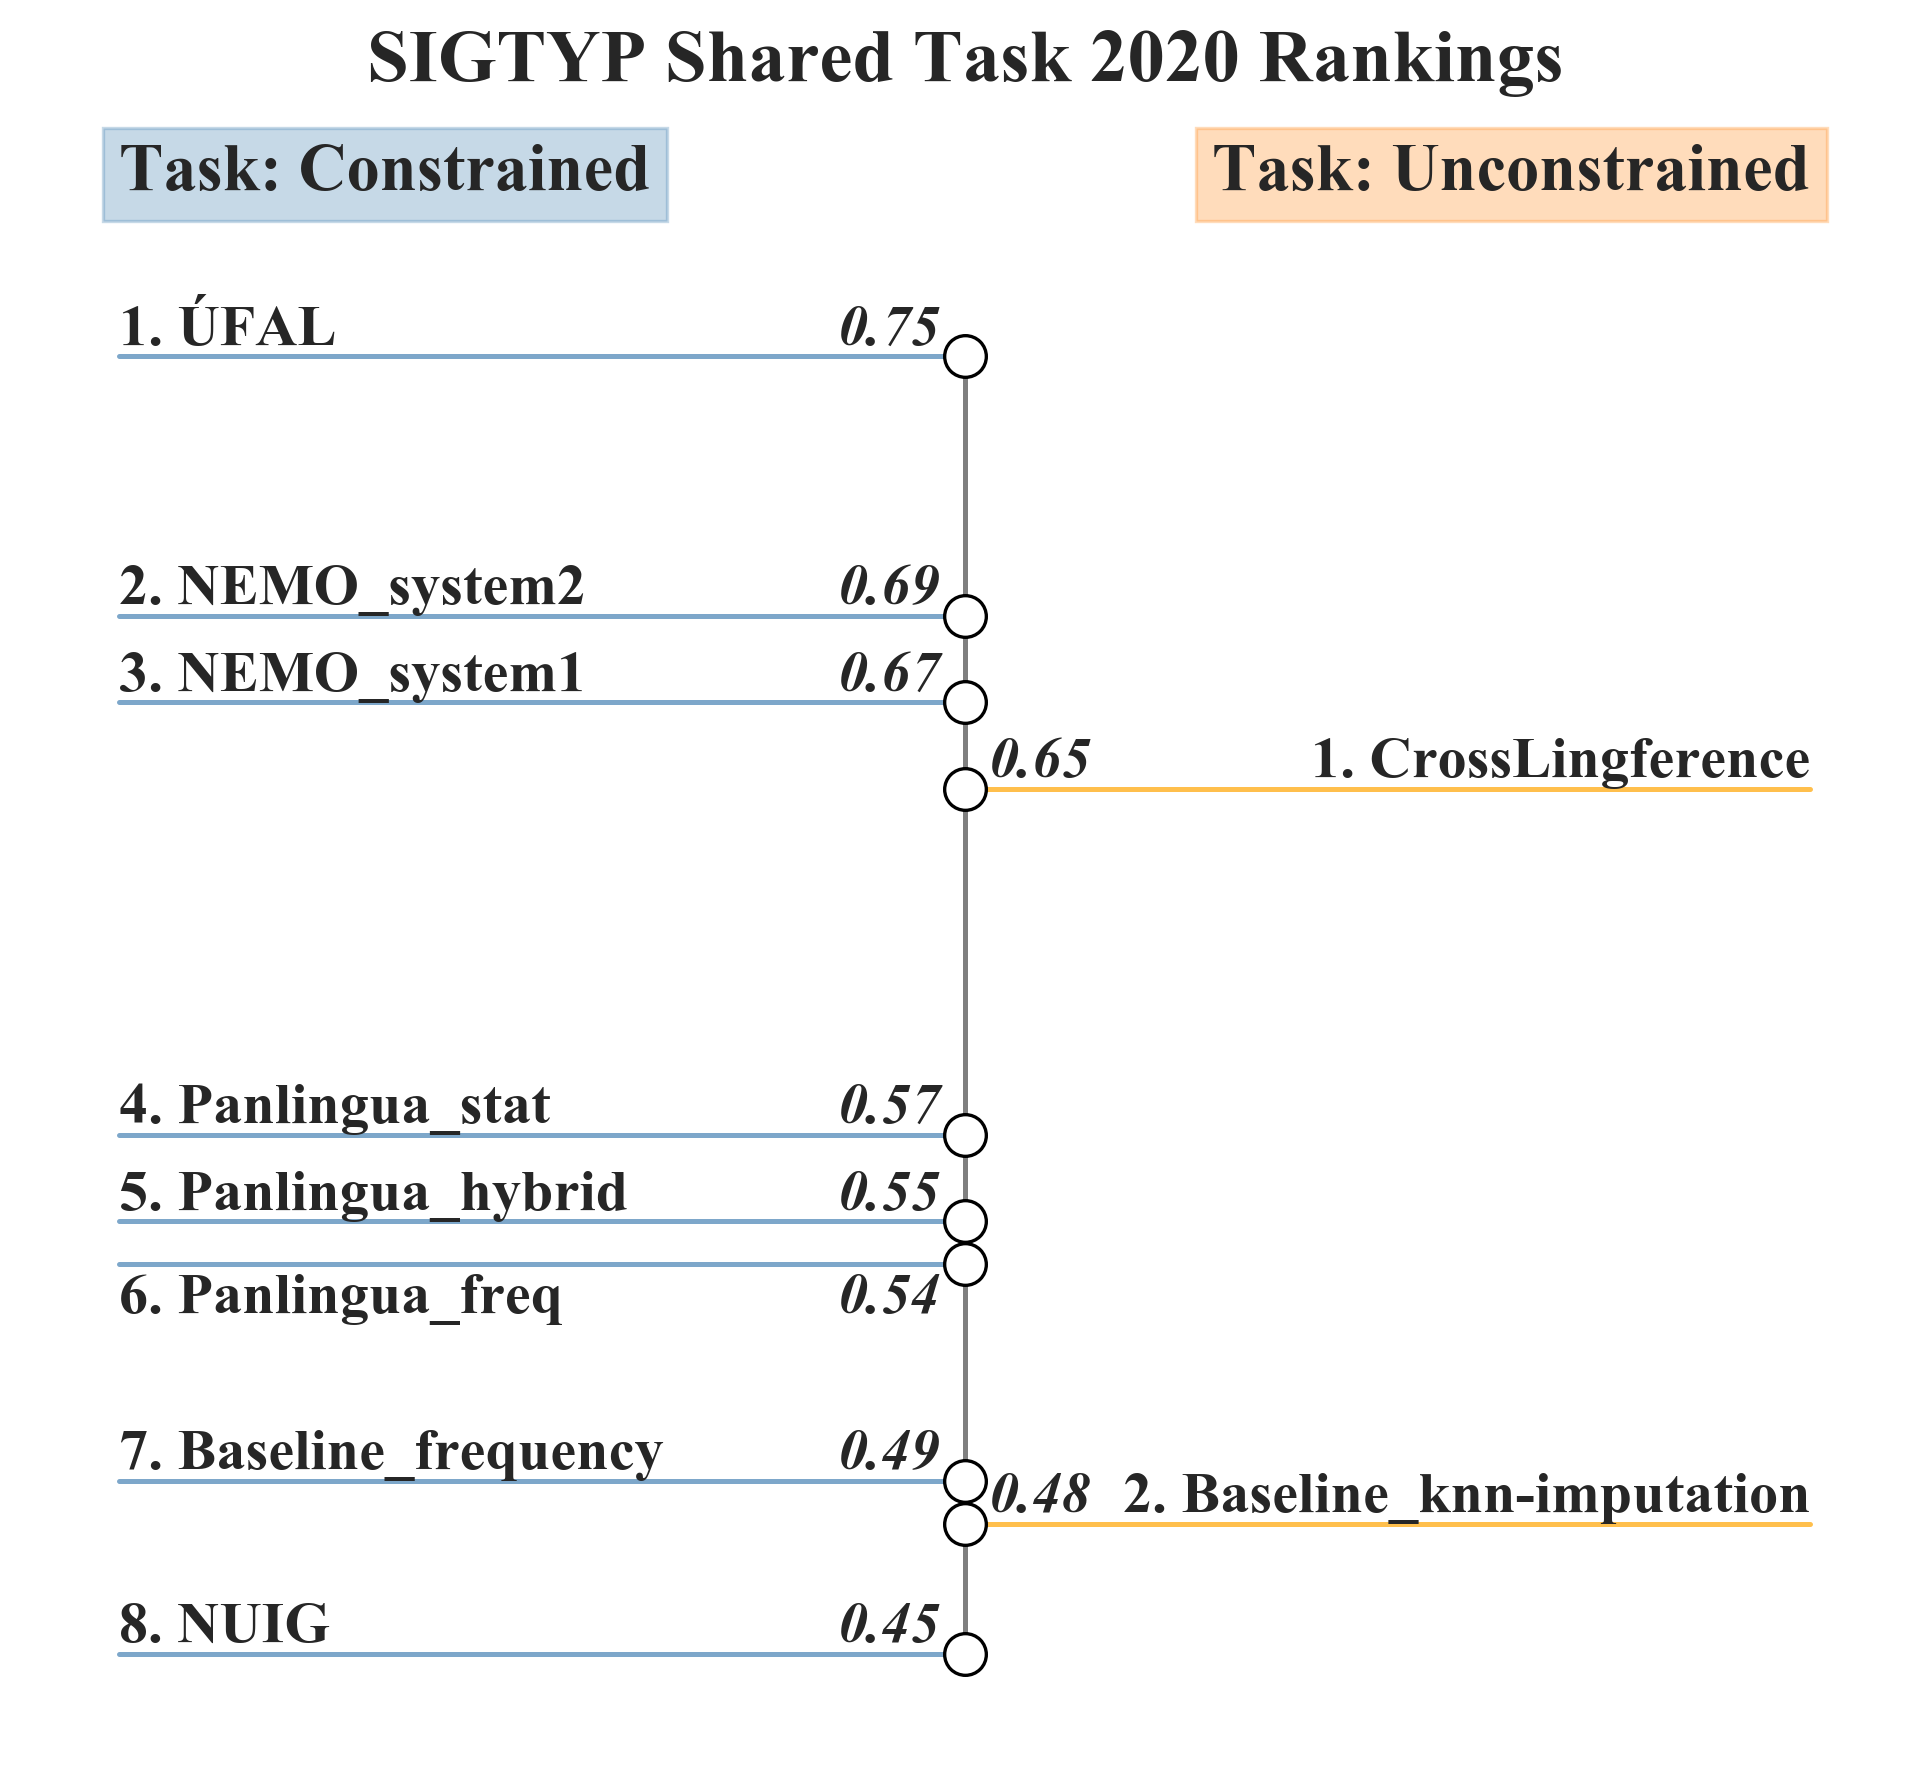 SIGTYP Shared Task 2020 Rankings